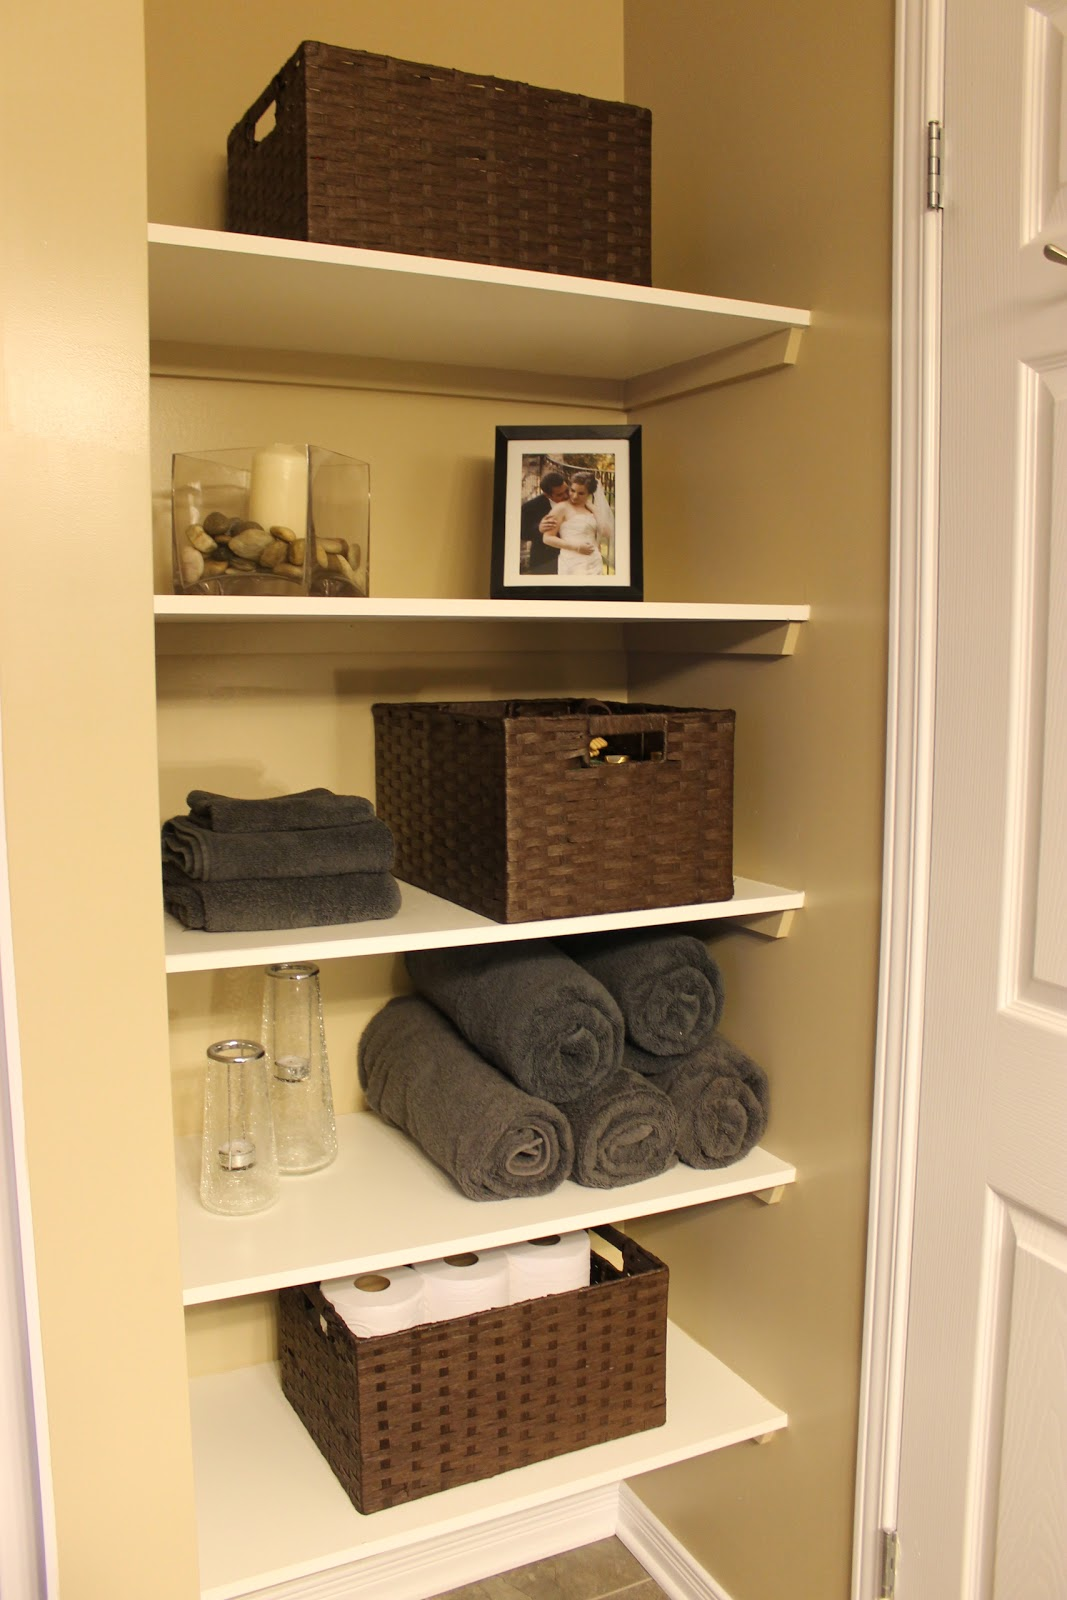 KM Decor: DIY: Organizing Open Shelving In A Bathroom